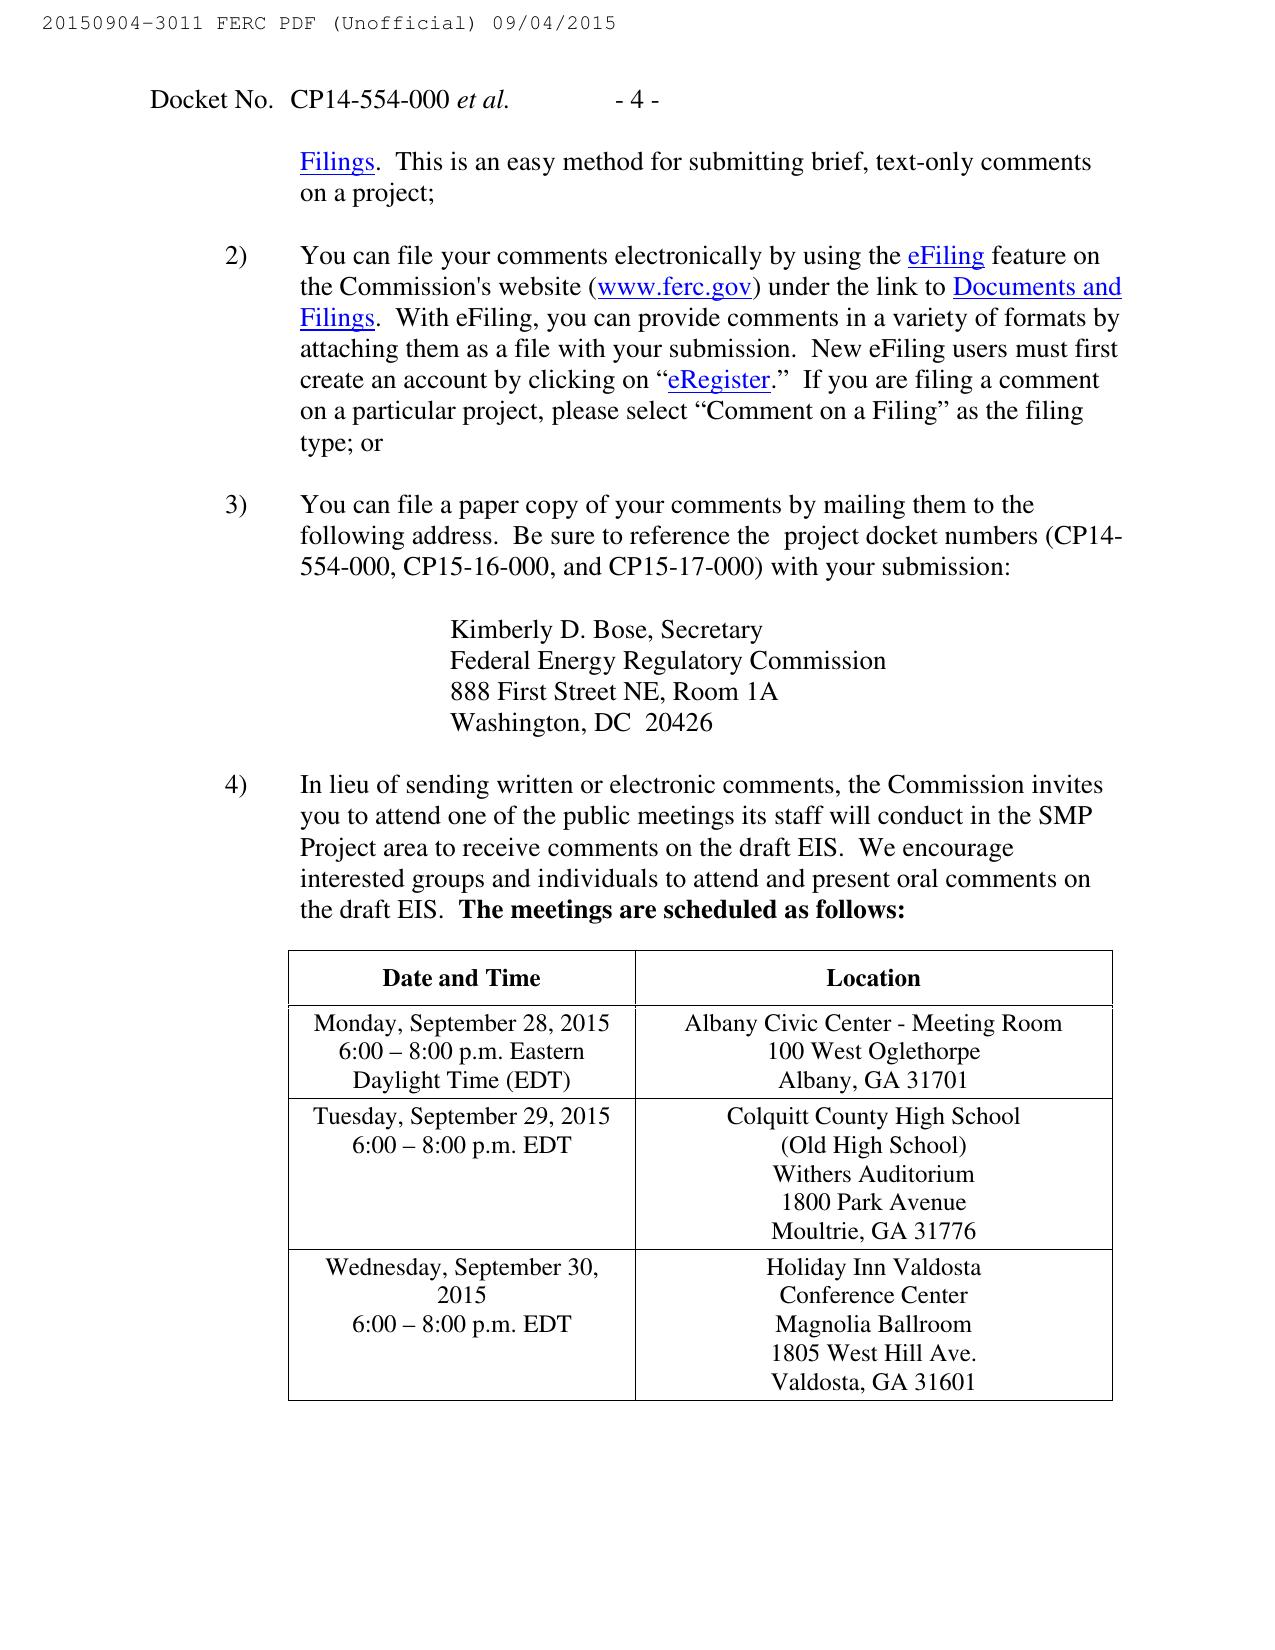 1275x1650 Meeting schedule, in Notice of Availability of Draft Environmental Impact Statement, by FERC, for SpectraBusters.org, 4 September 2015